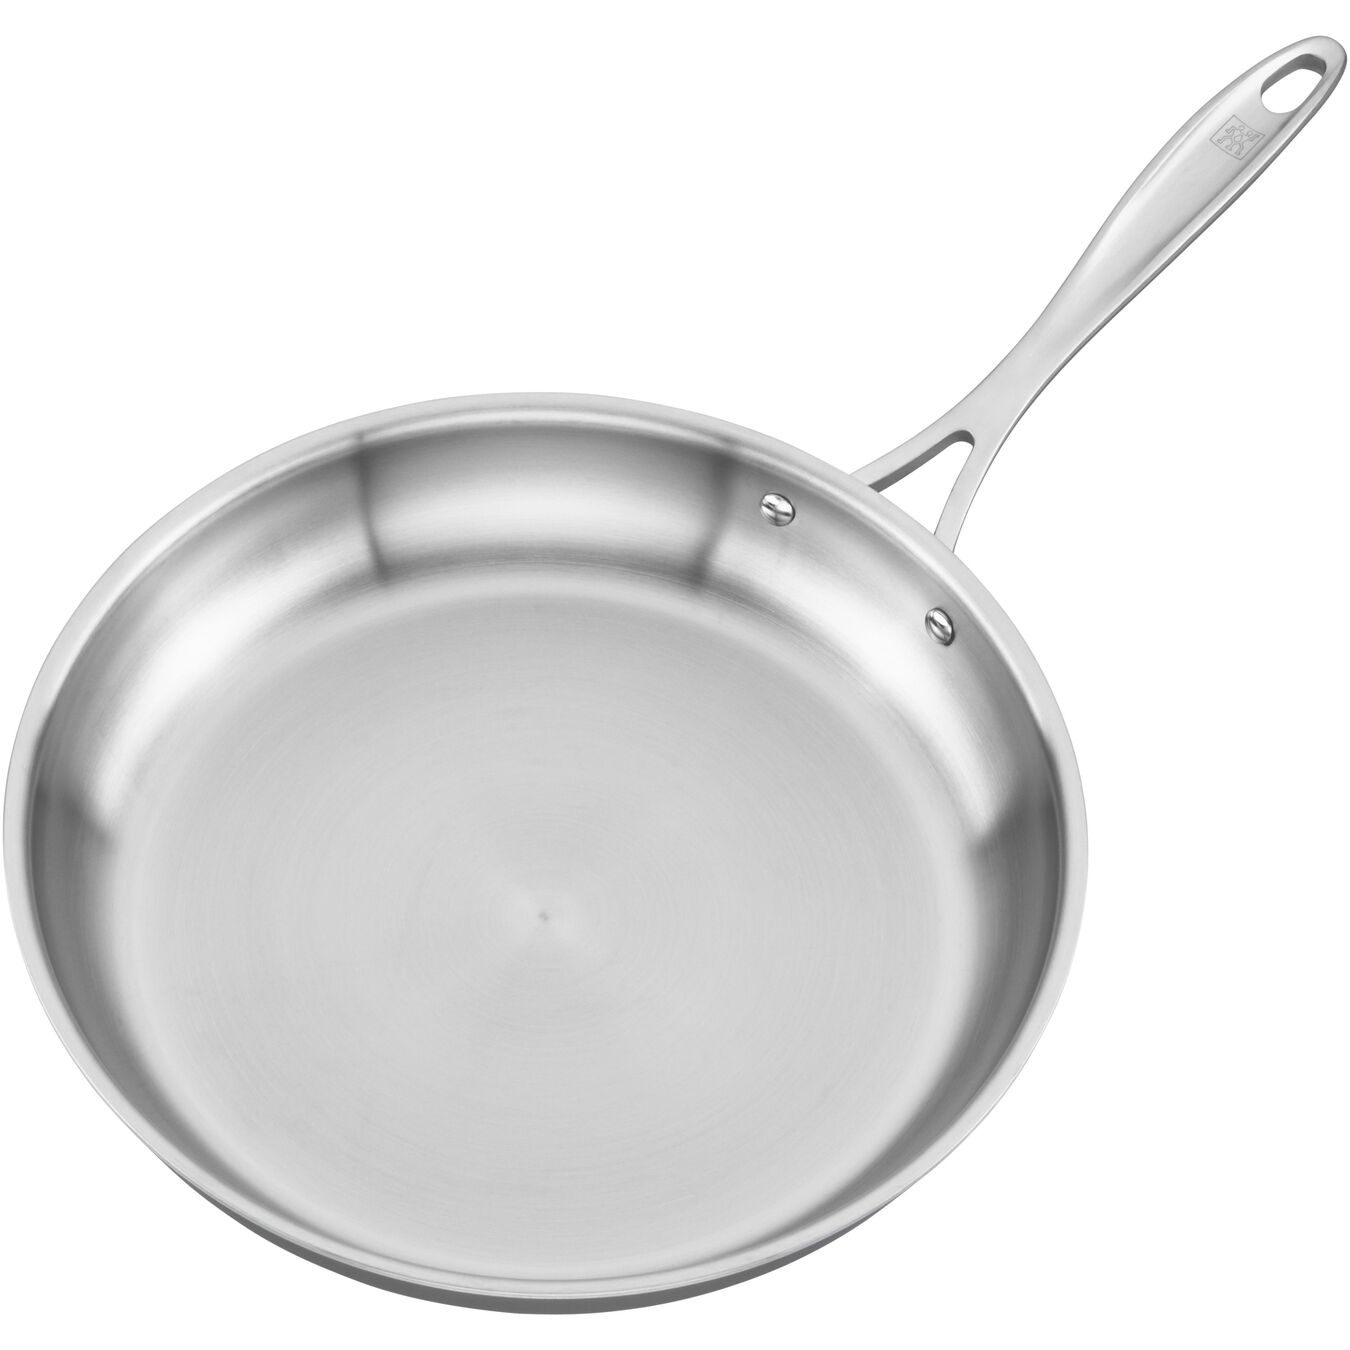 12-inch, 18/10 Stainless Steel, Frying pan,,large 2